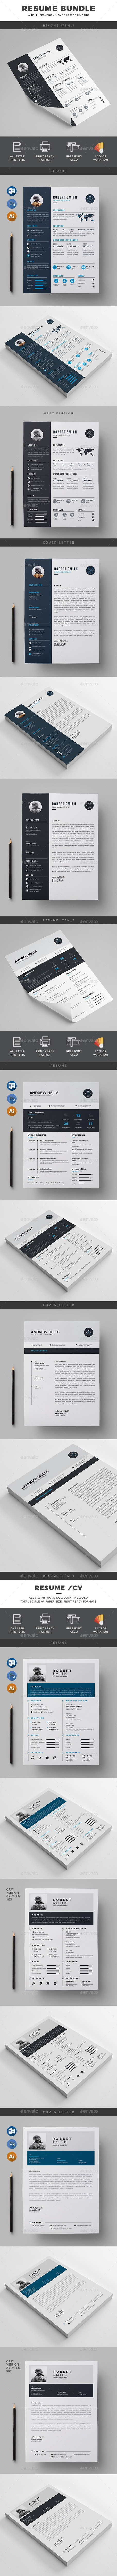 Illustrator Resume Templates Resume Template Bundle 3 In 1  Psd Vector Eps Ai Illustrator